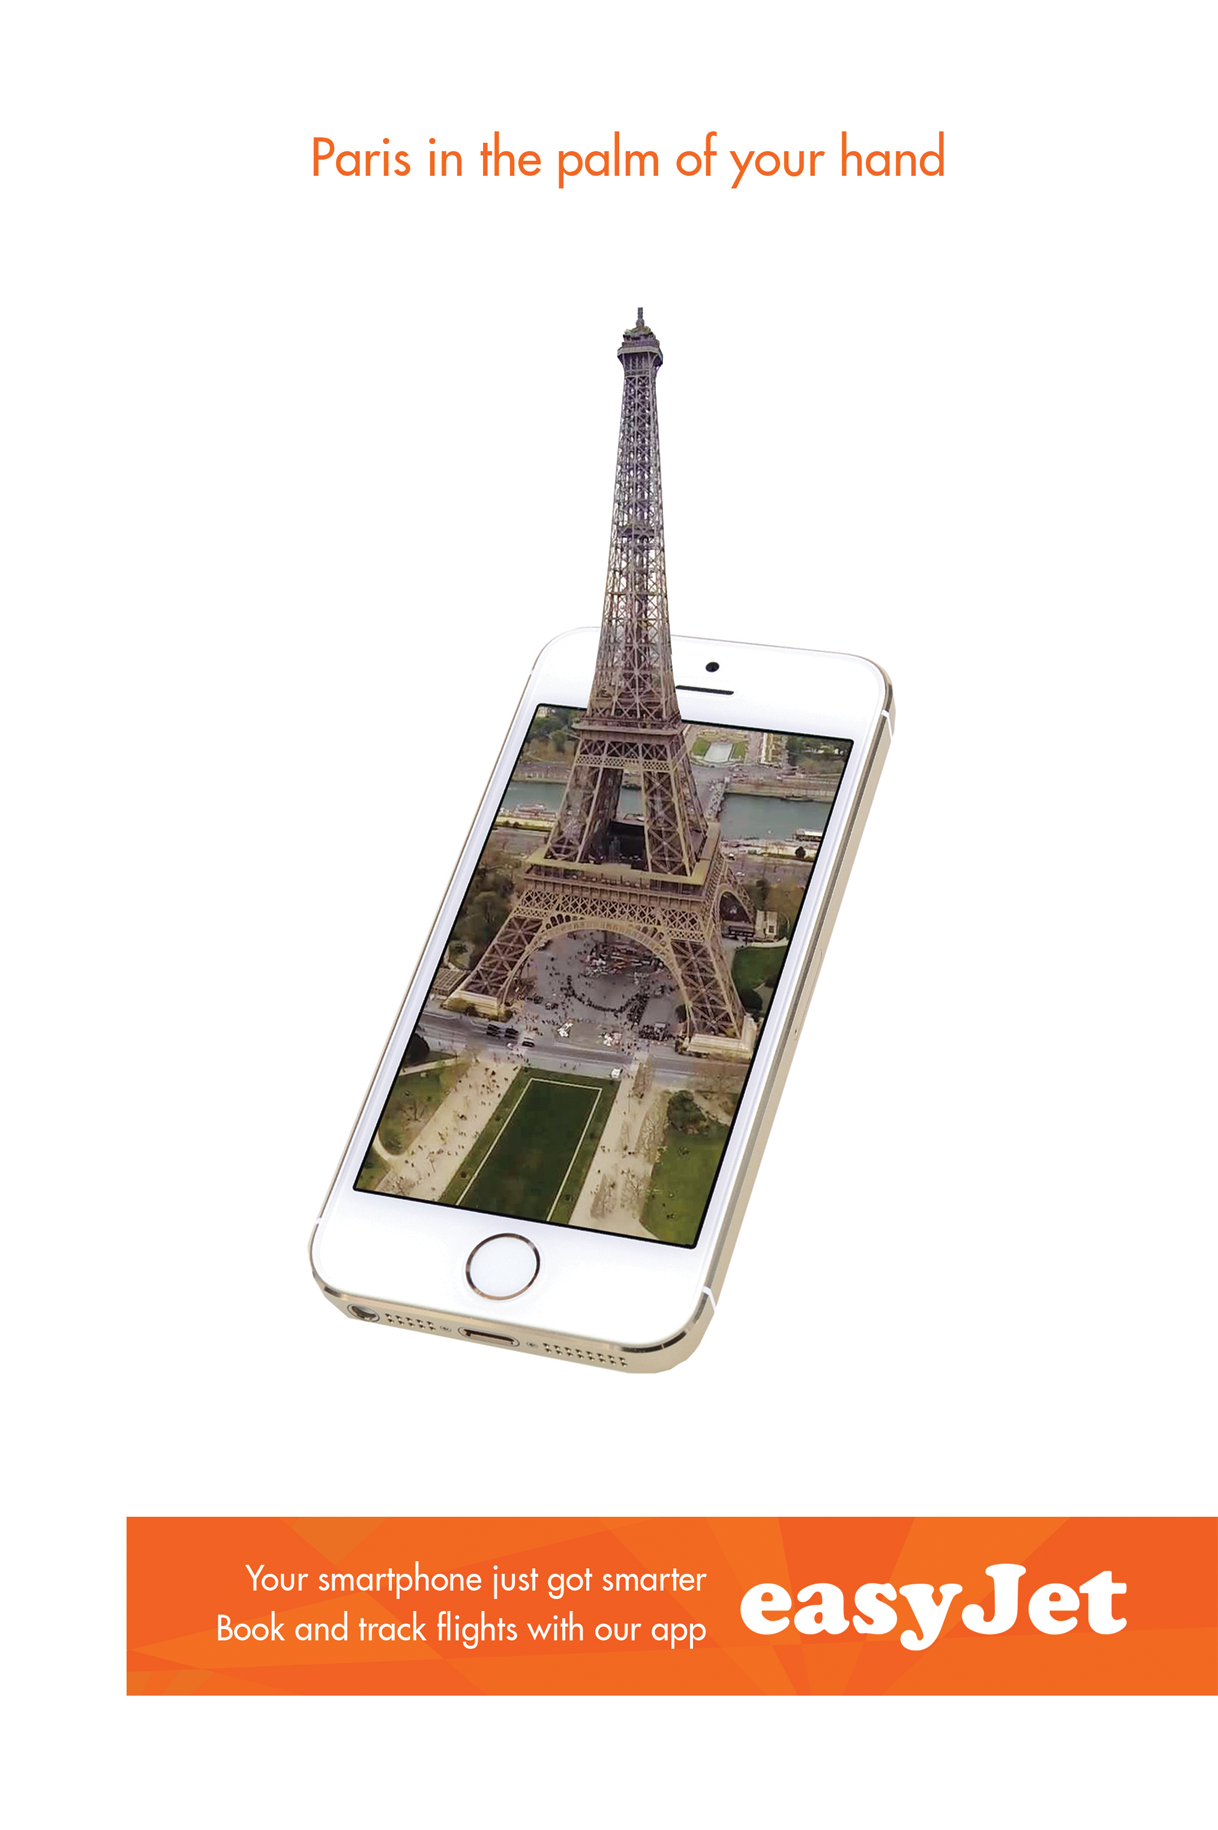 Easyjet - Paris in the palm of your hand